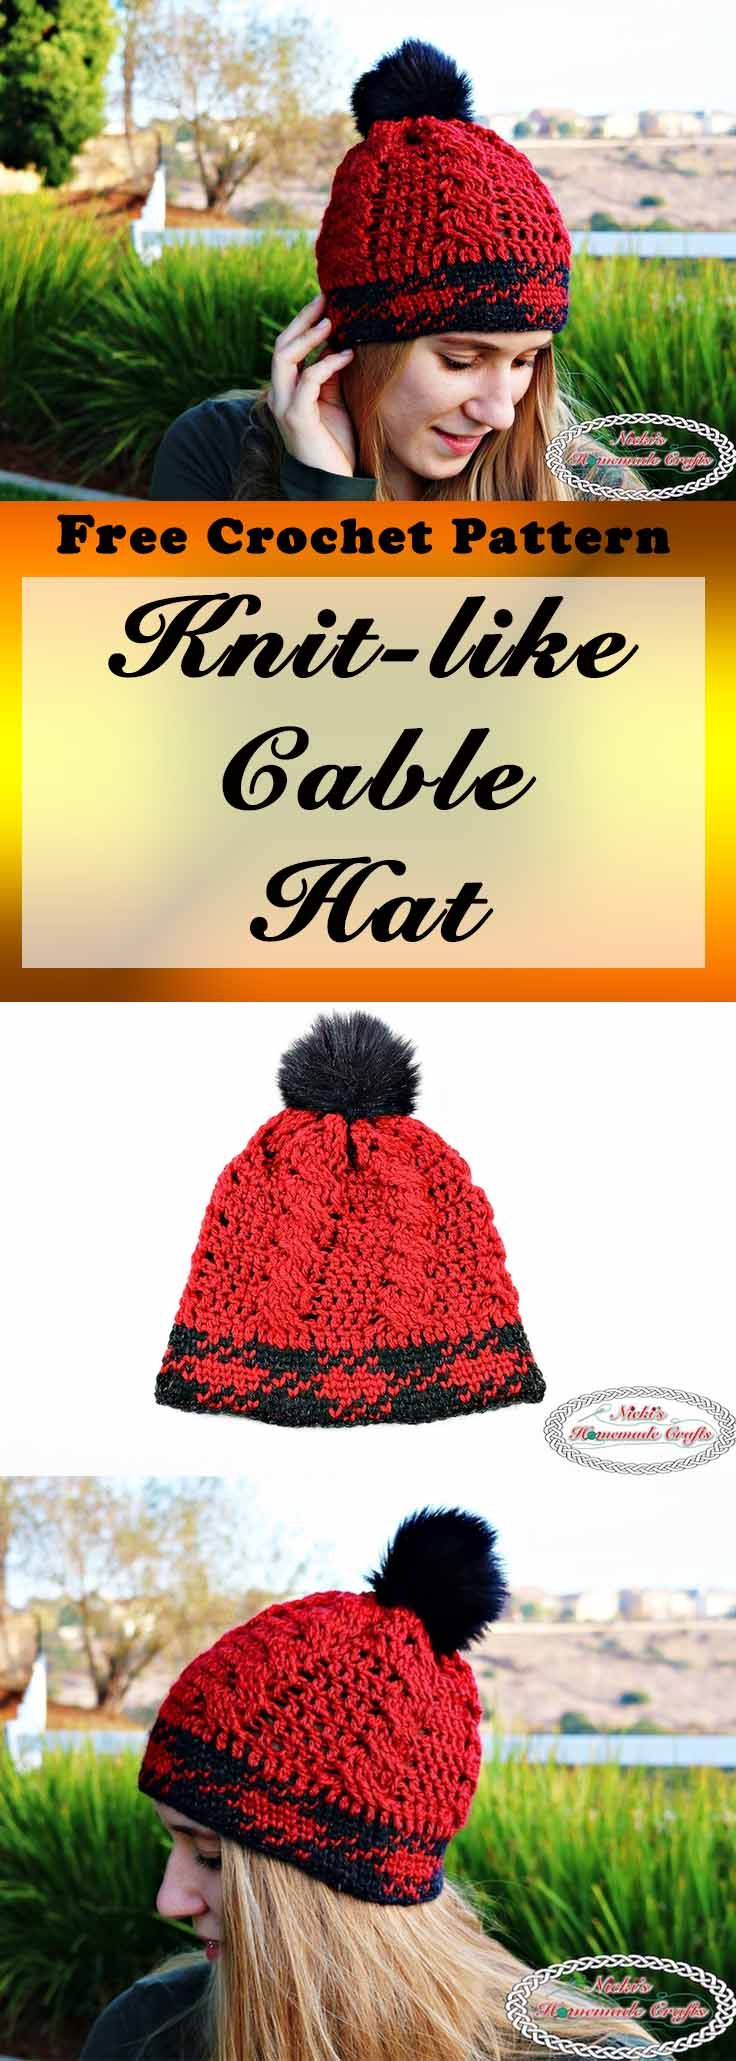 Knit-like Cable Hat Free Crochet Pattern by Nicki\'s Homemade Crafts ...